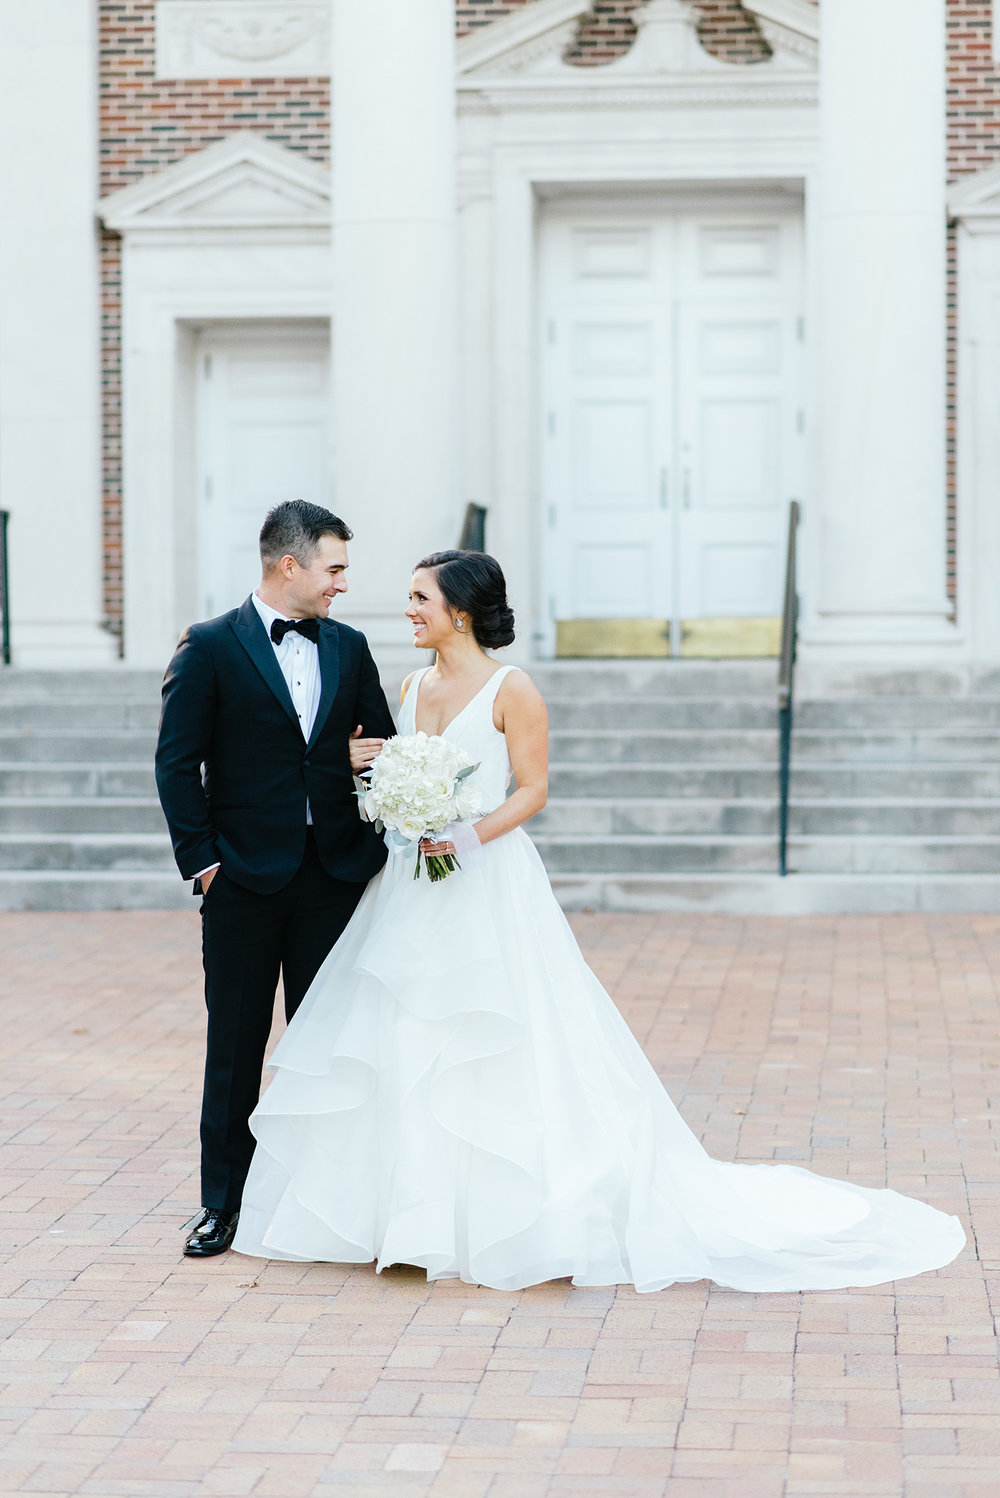 MattAndJulieWeddings-PerkensChapelWedding-RoomonMain-Alyssa+Chris183.jpg